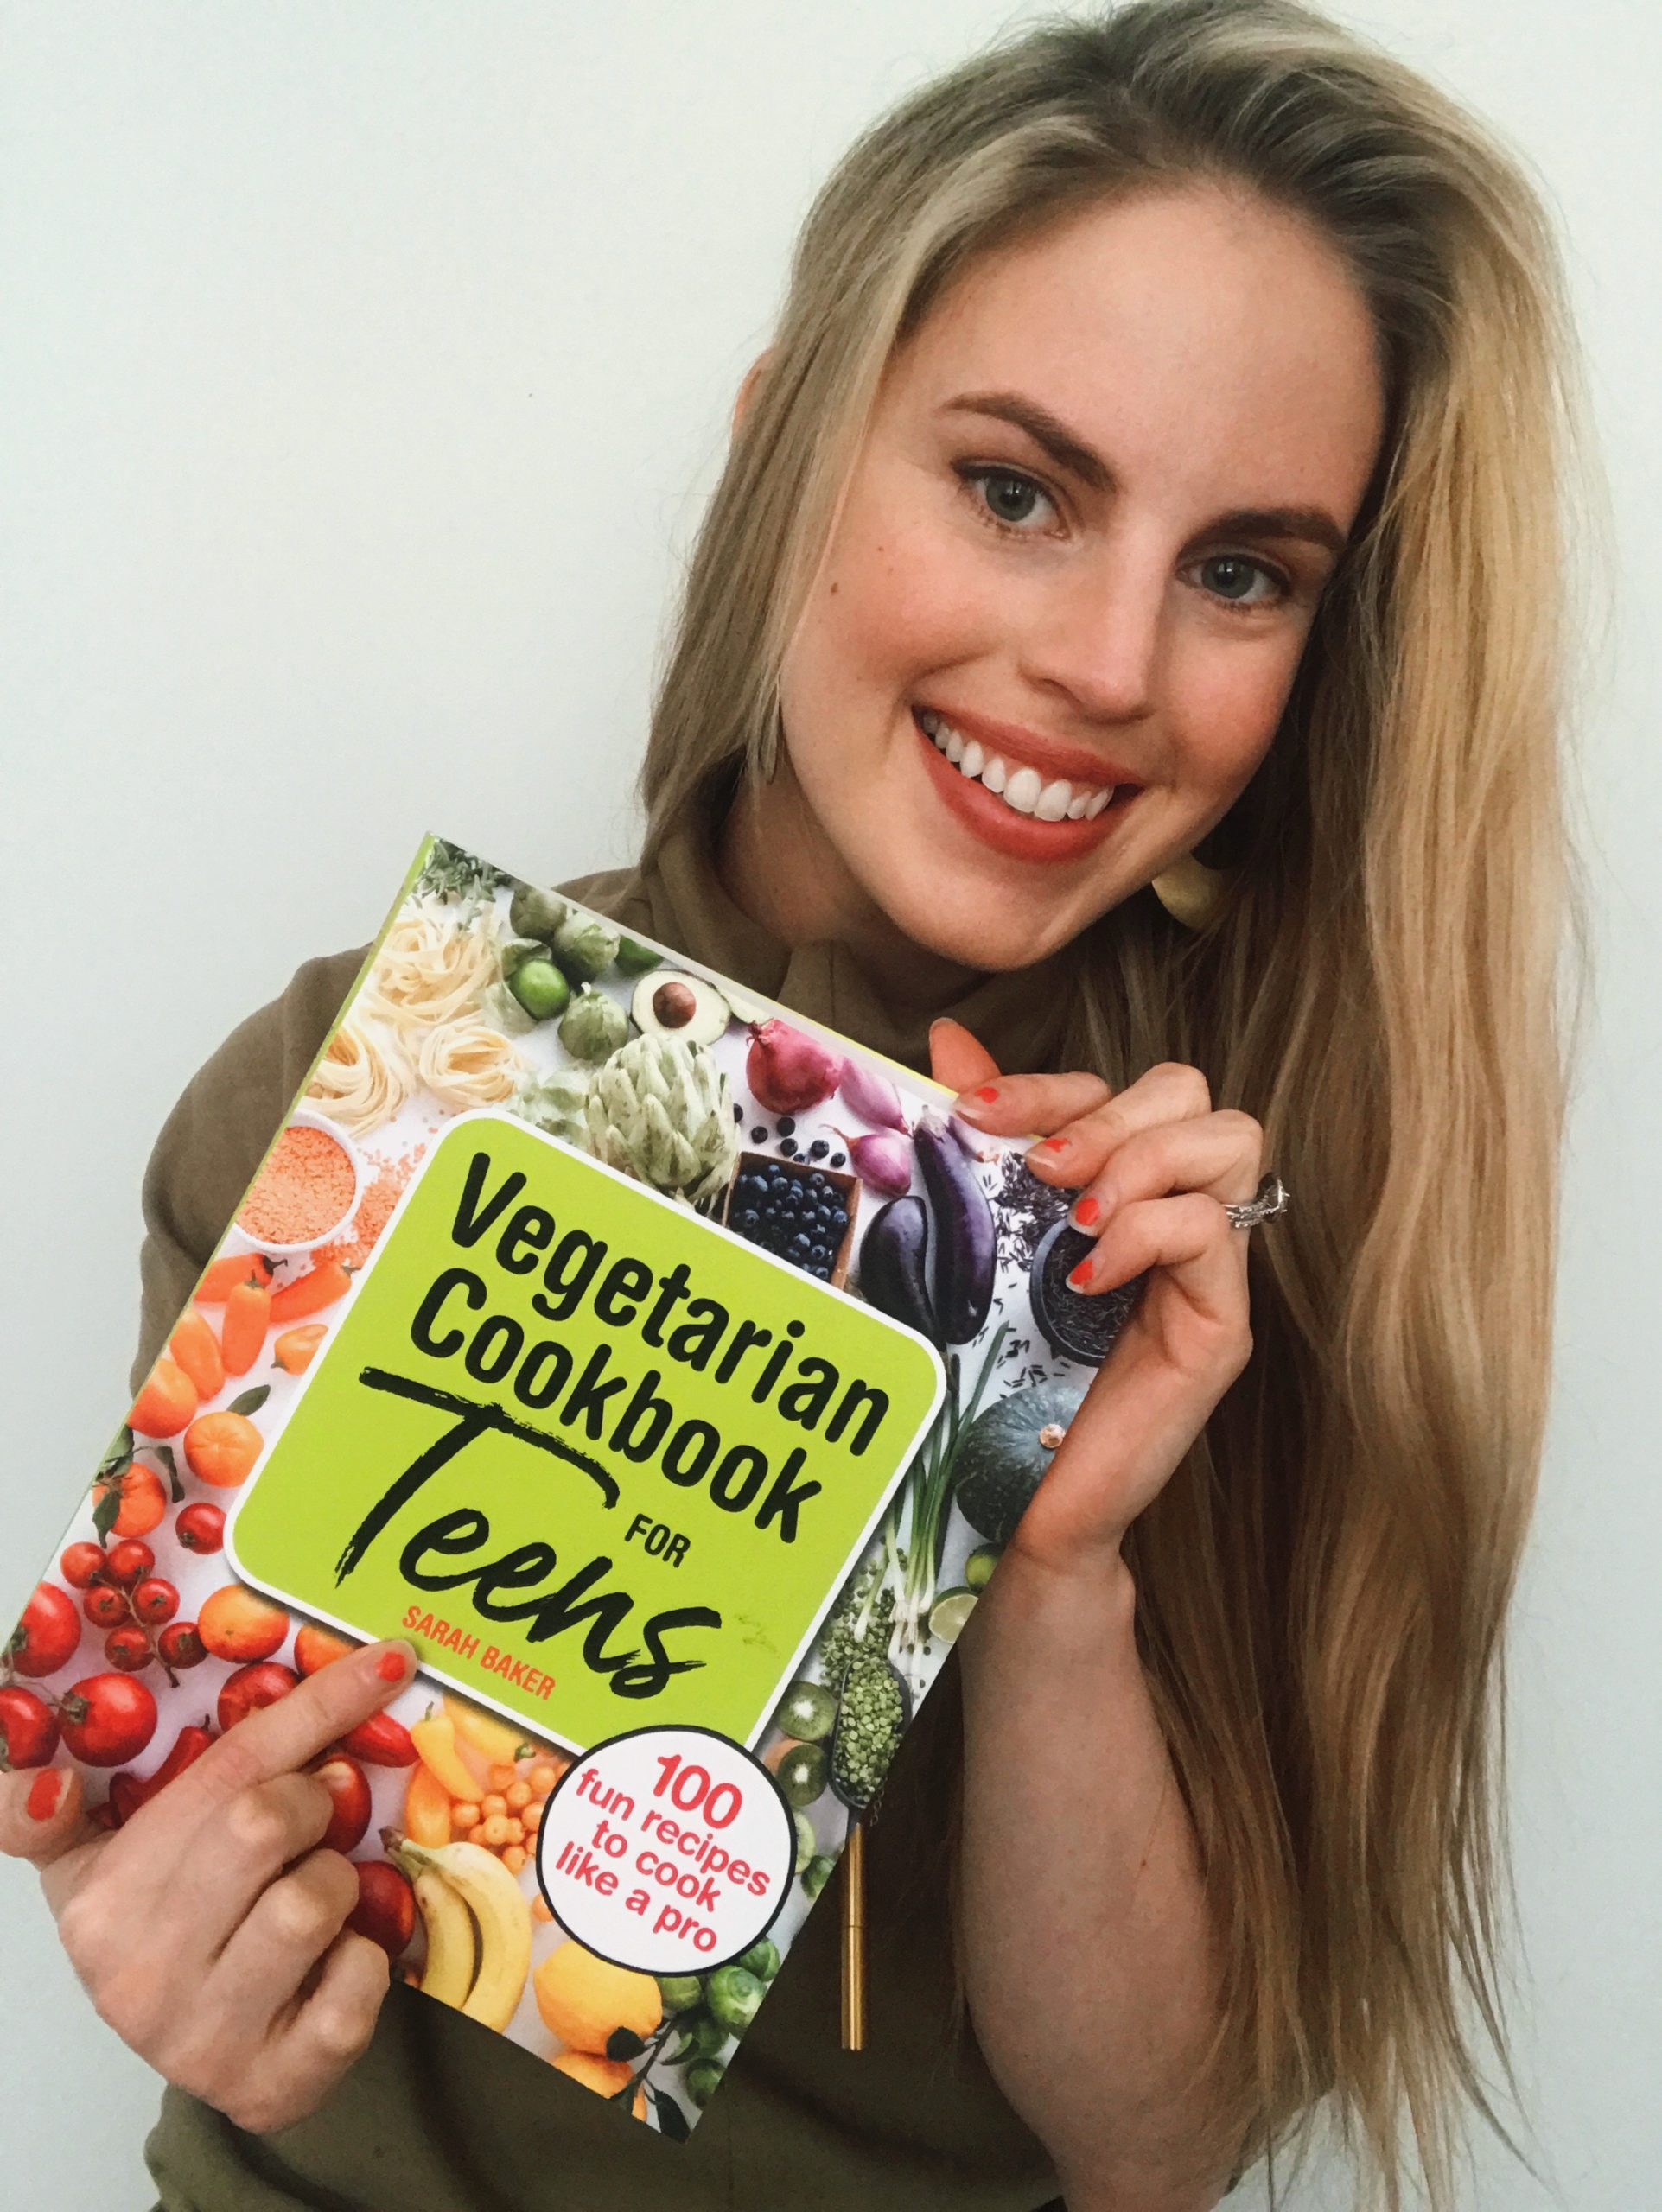 My First Book! The Vegetarian Cookbook For Teens!